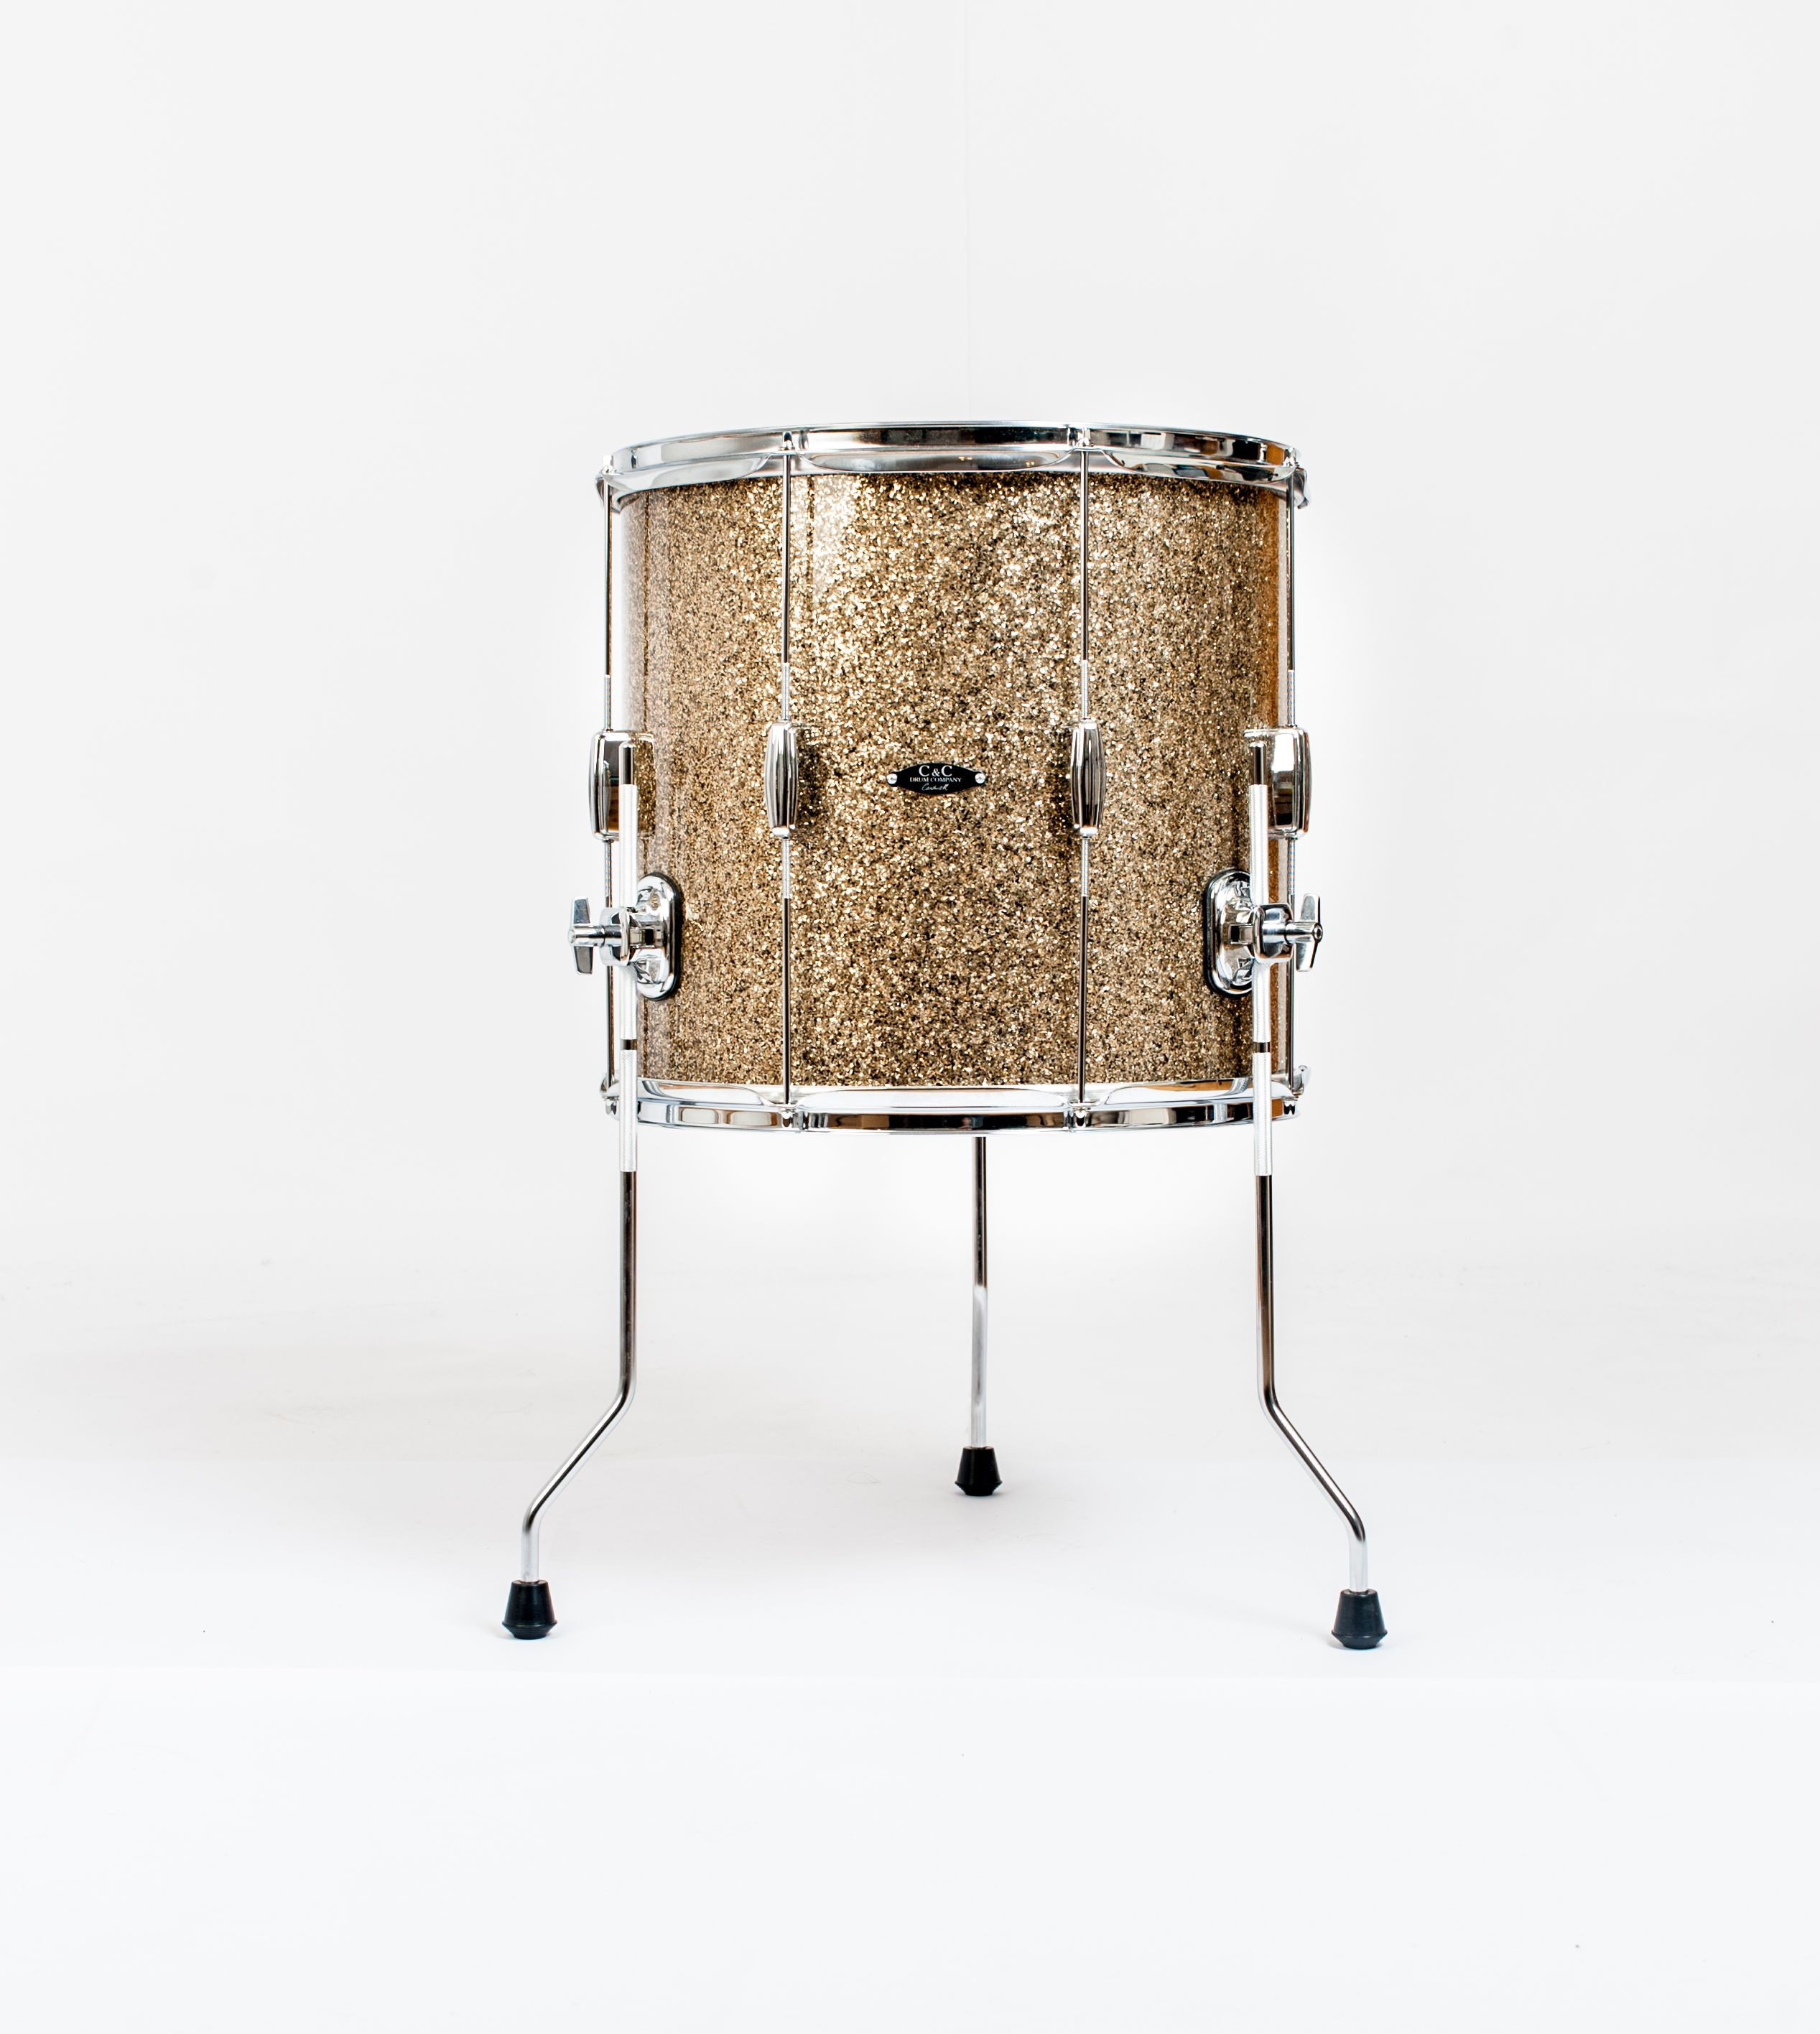 C&C Drums Europe - Vintage Drums - Player Date Europe - Ginger Glass Glitter - Floor Tom www.candcdrumseurope.com